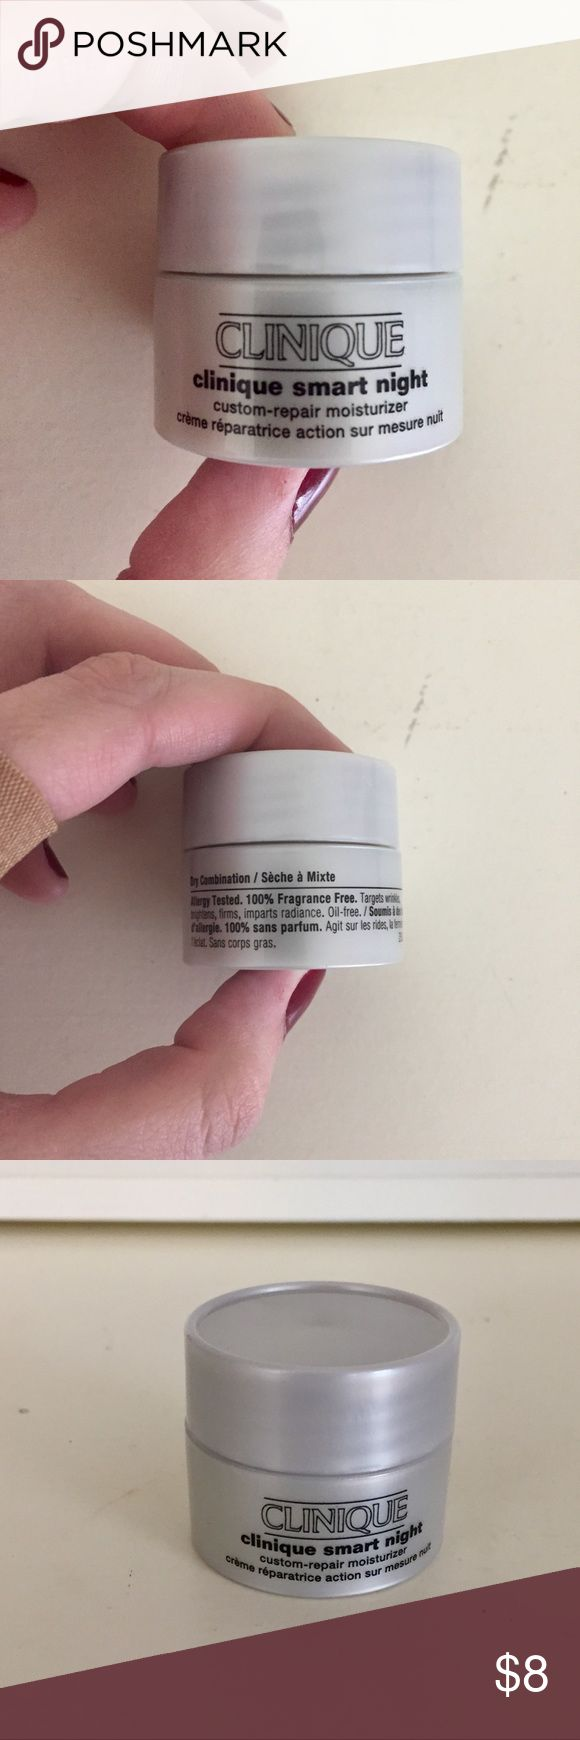 Clinique Smart Night Custom Repair Moisturizer for dry combination skin. allergy tested. 100% fragrance free. unopened. comment any questions Clinique Makeup